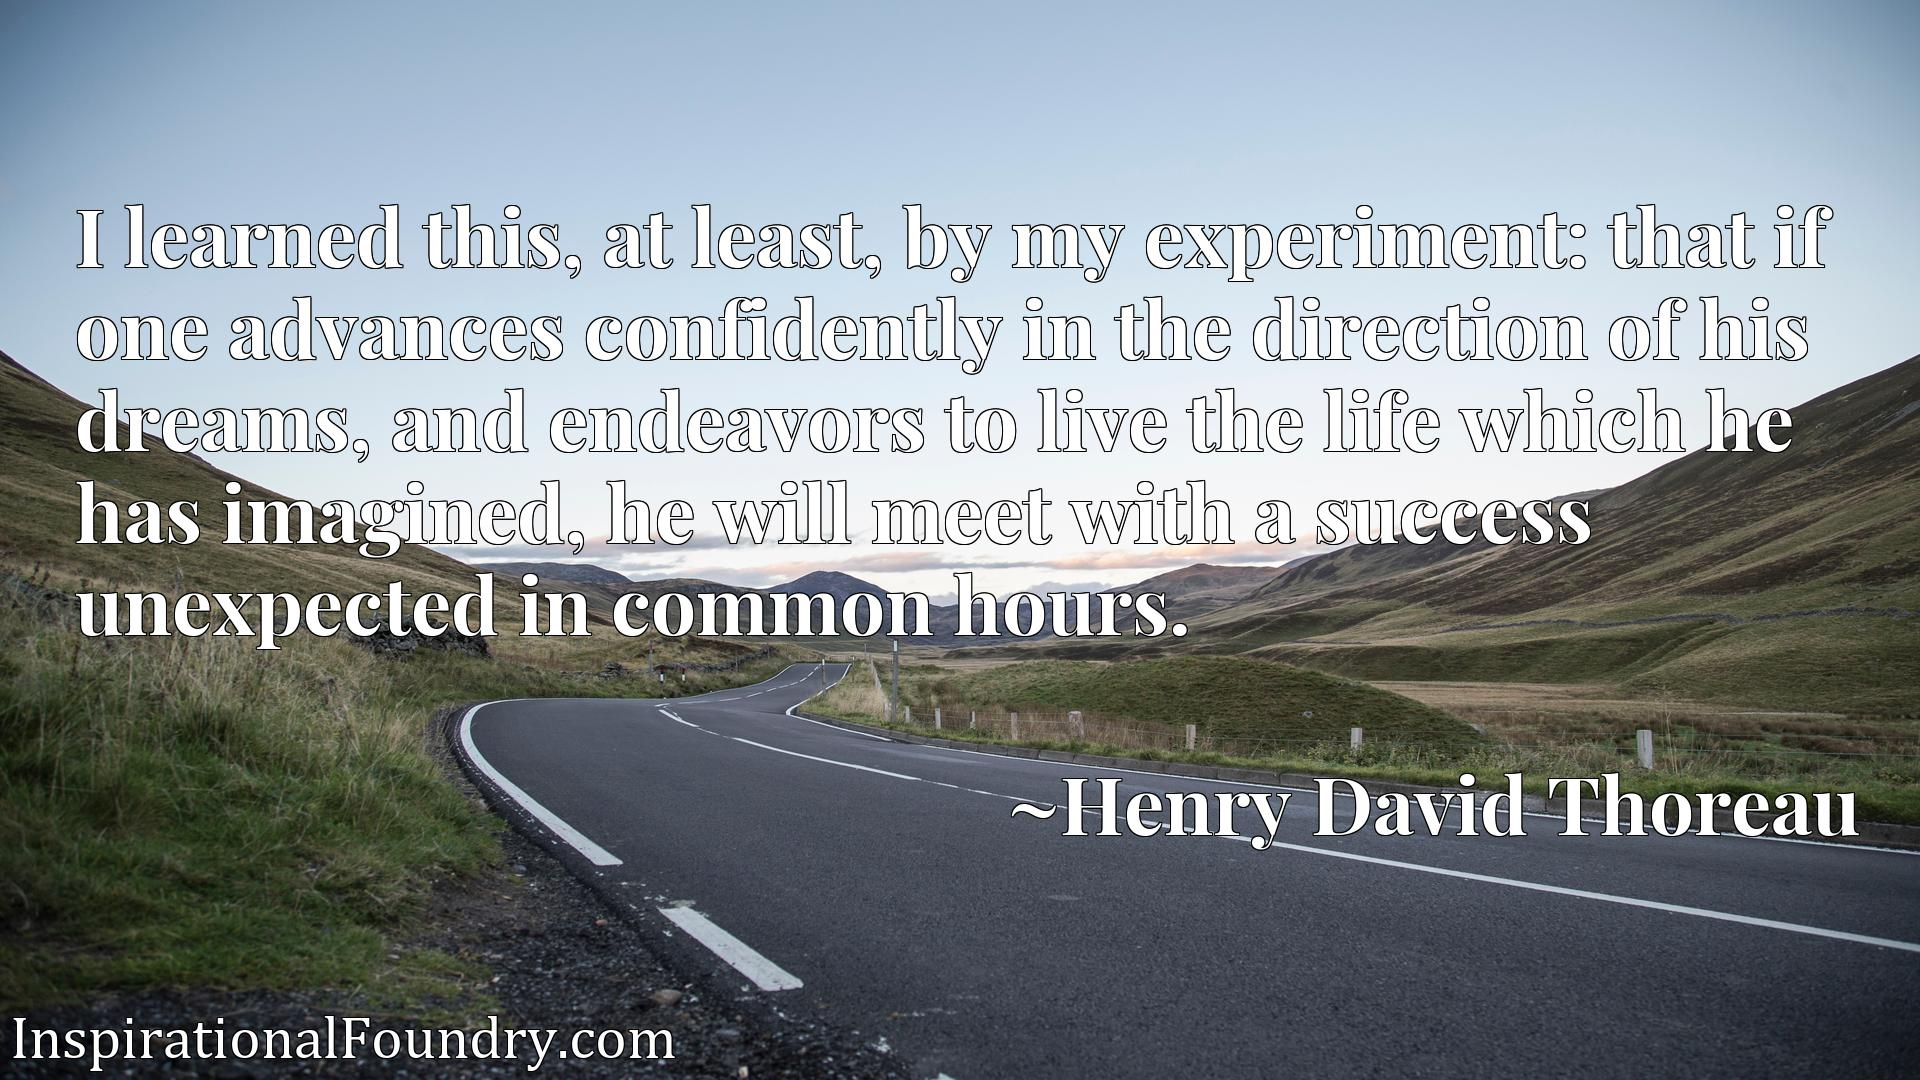 Quote Picture :I learned this, at least, by my experiment: that if one advances confidently in the direction of his dreams, and endeavors to live the life which he has imagined, he will meet with a success unexpected in common hours.